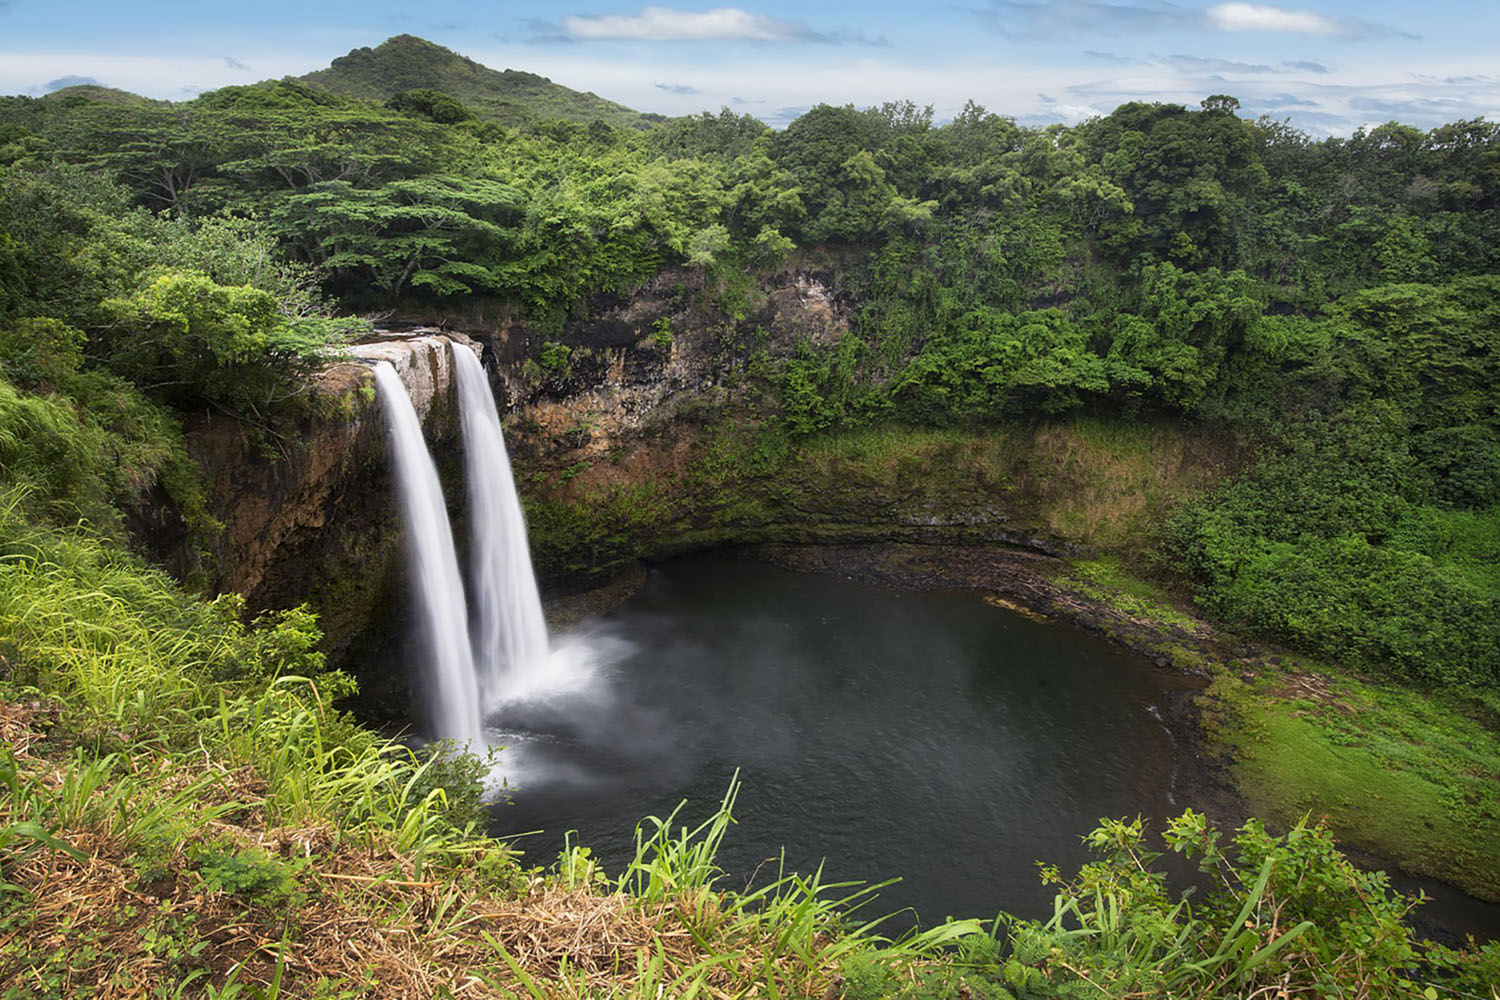 The Wailua Falls surrounded by lush green vegetation in Hawaii